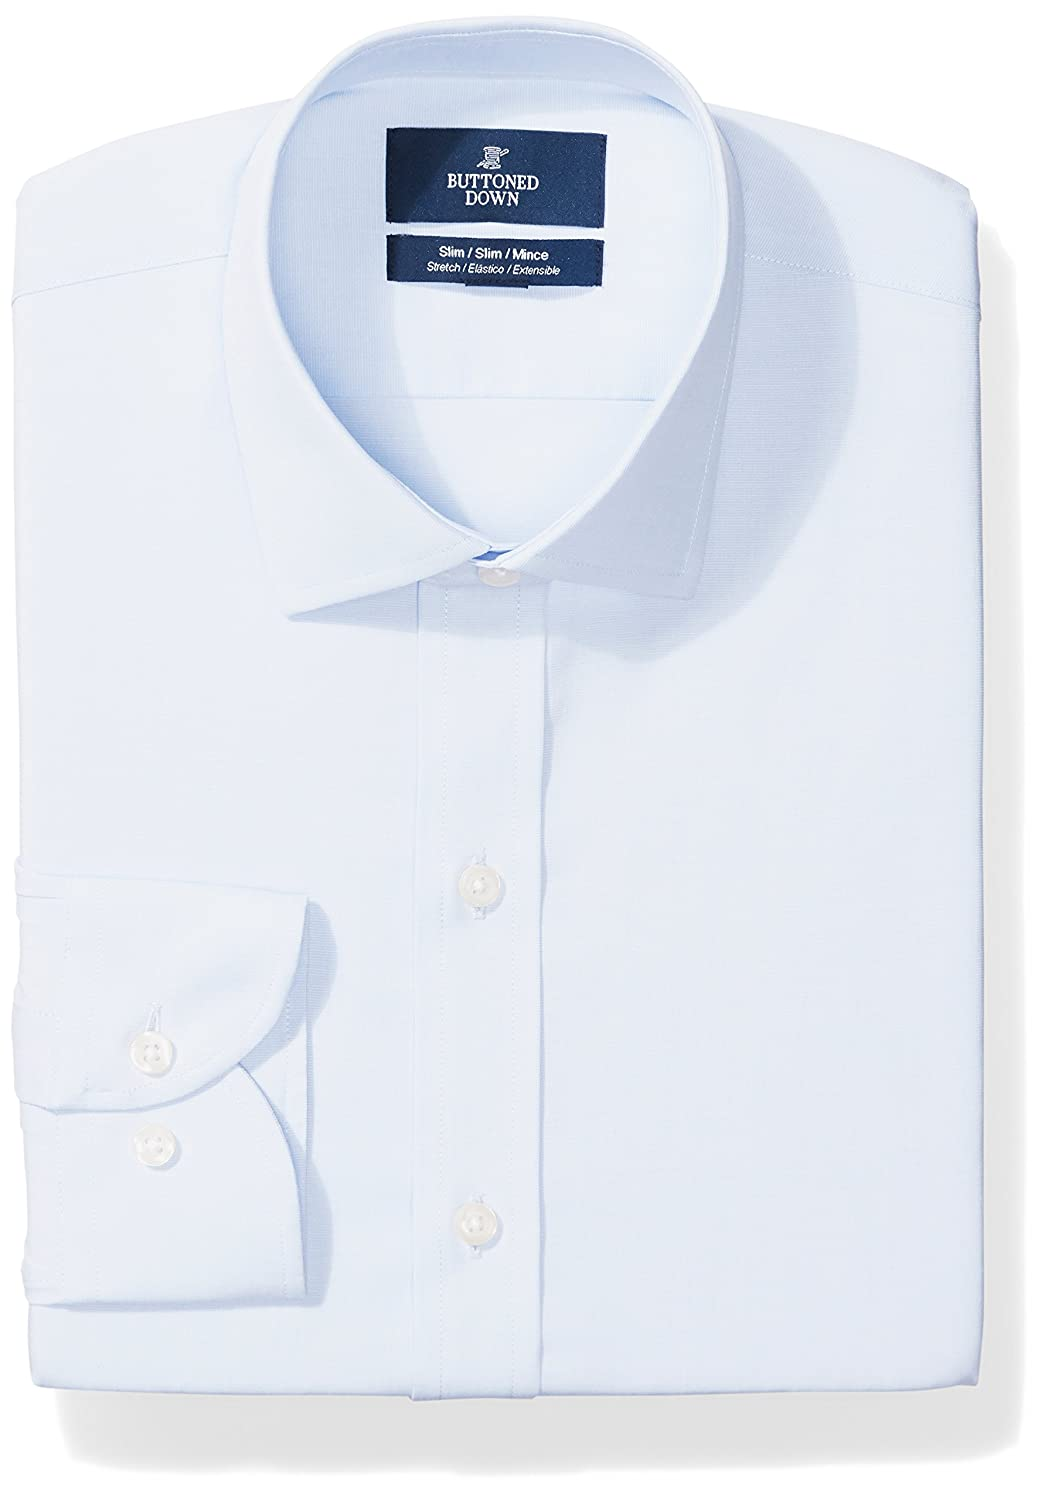 Buttoned Down Mens Standard Slim Fit Spread-Collar Stretch Non-Iron Dress Shirt MBD30023